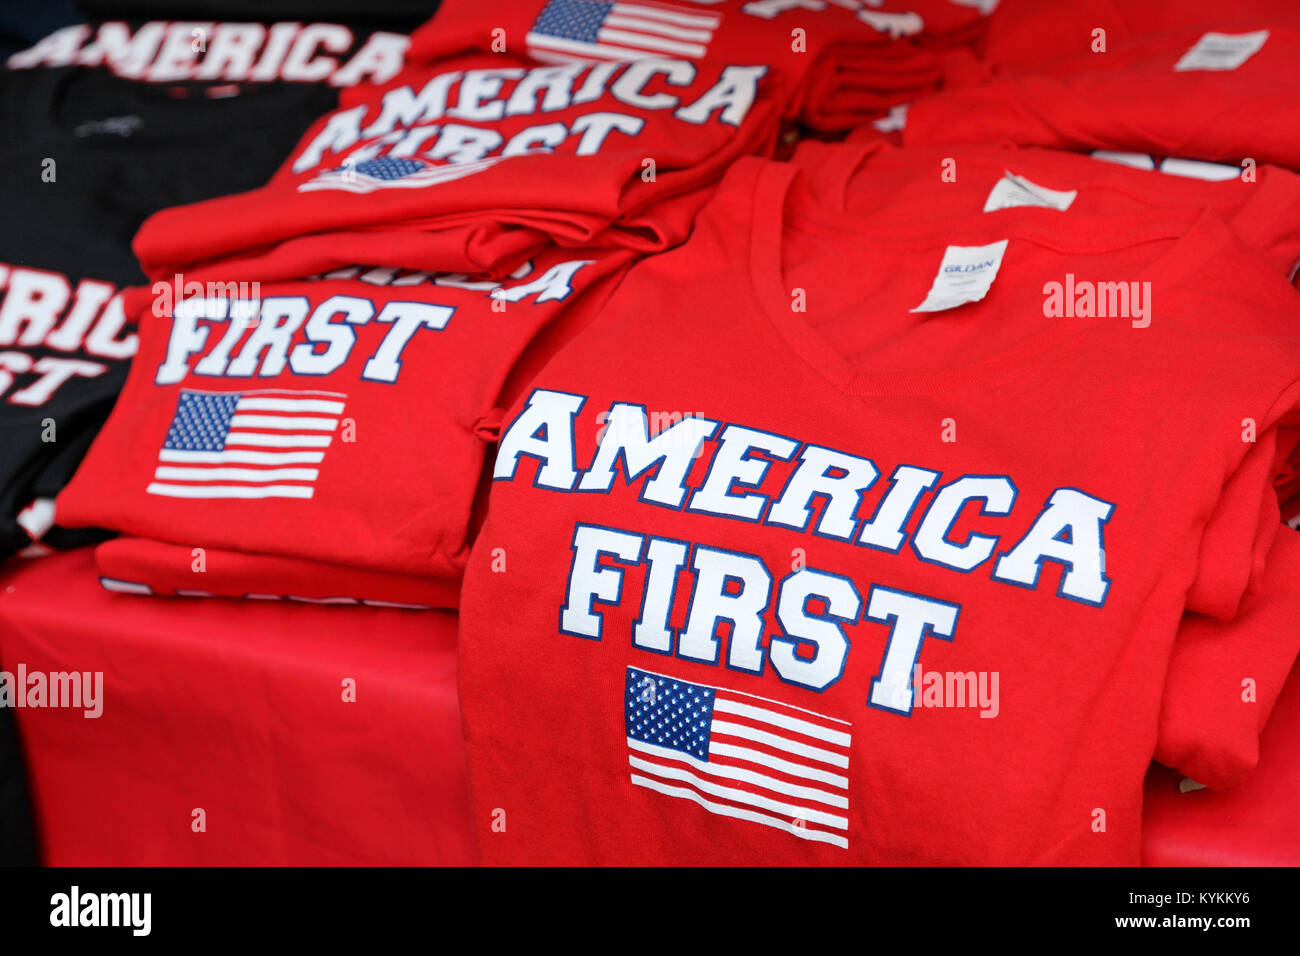 America First T-shirts on sale at Ray Price Capital City Bike fest in Raleigh, North Carolina, on September 23, Stock Photo